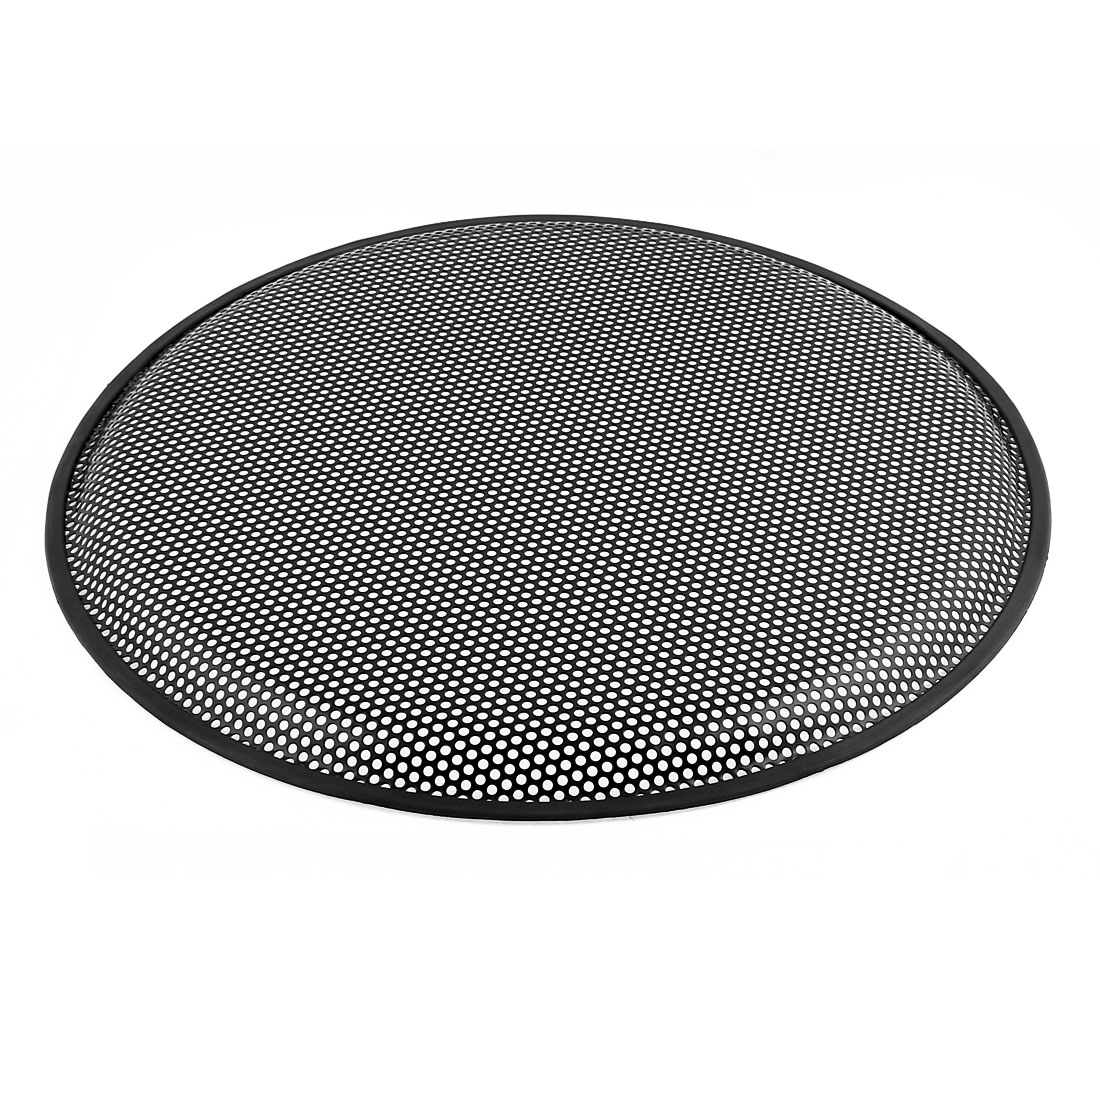 "18"" Car Audio Speaker Mesh Sub Woofer Subwoofer Grill Dust Cover Protector"